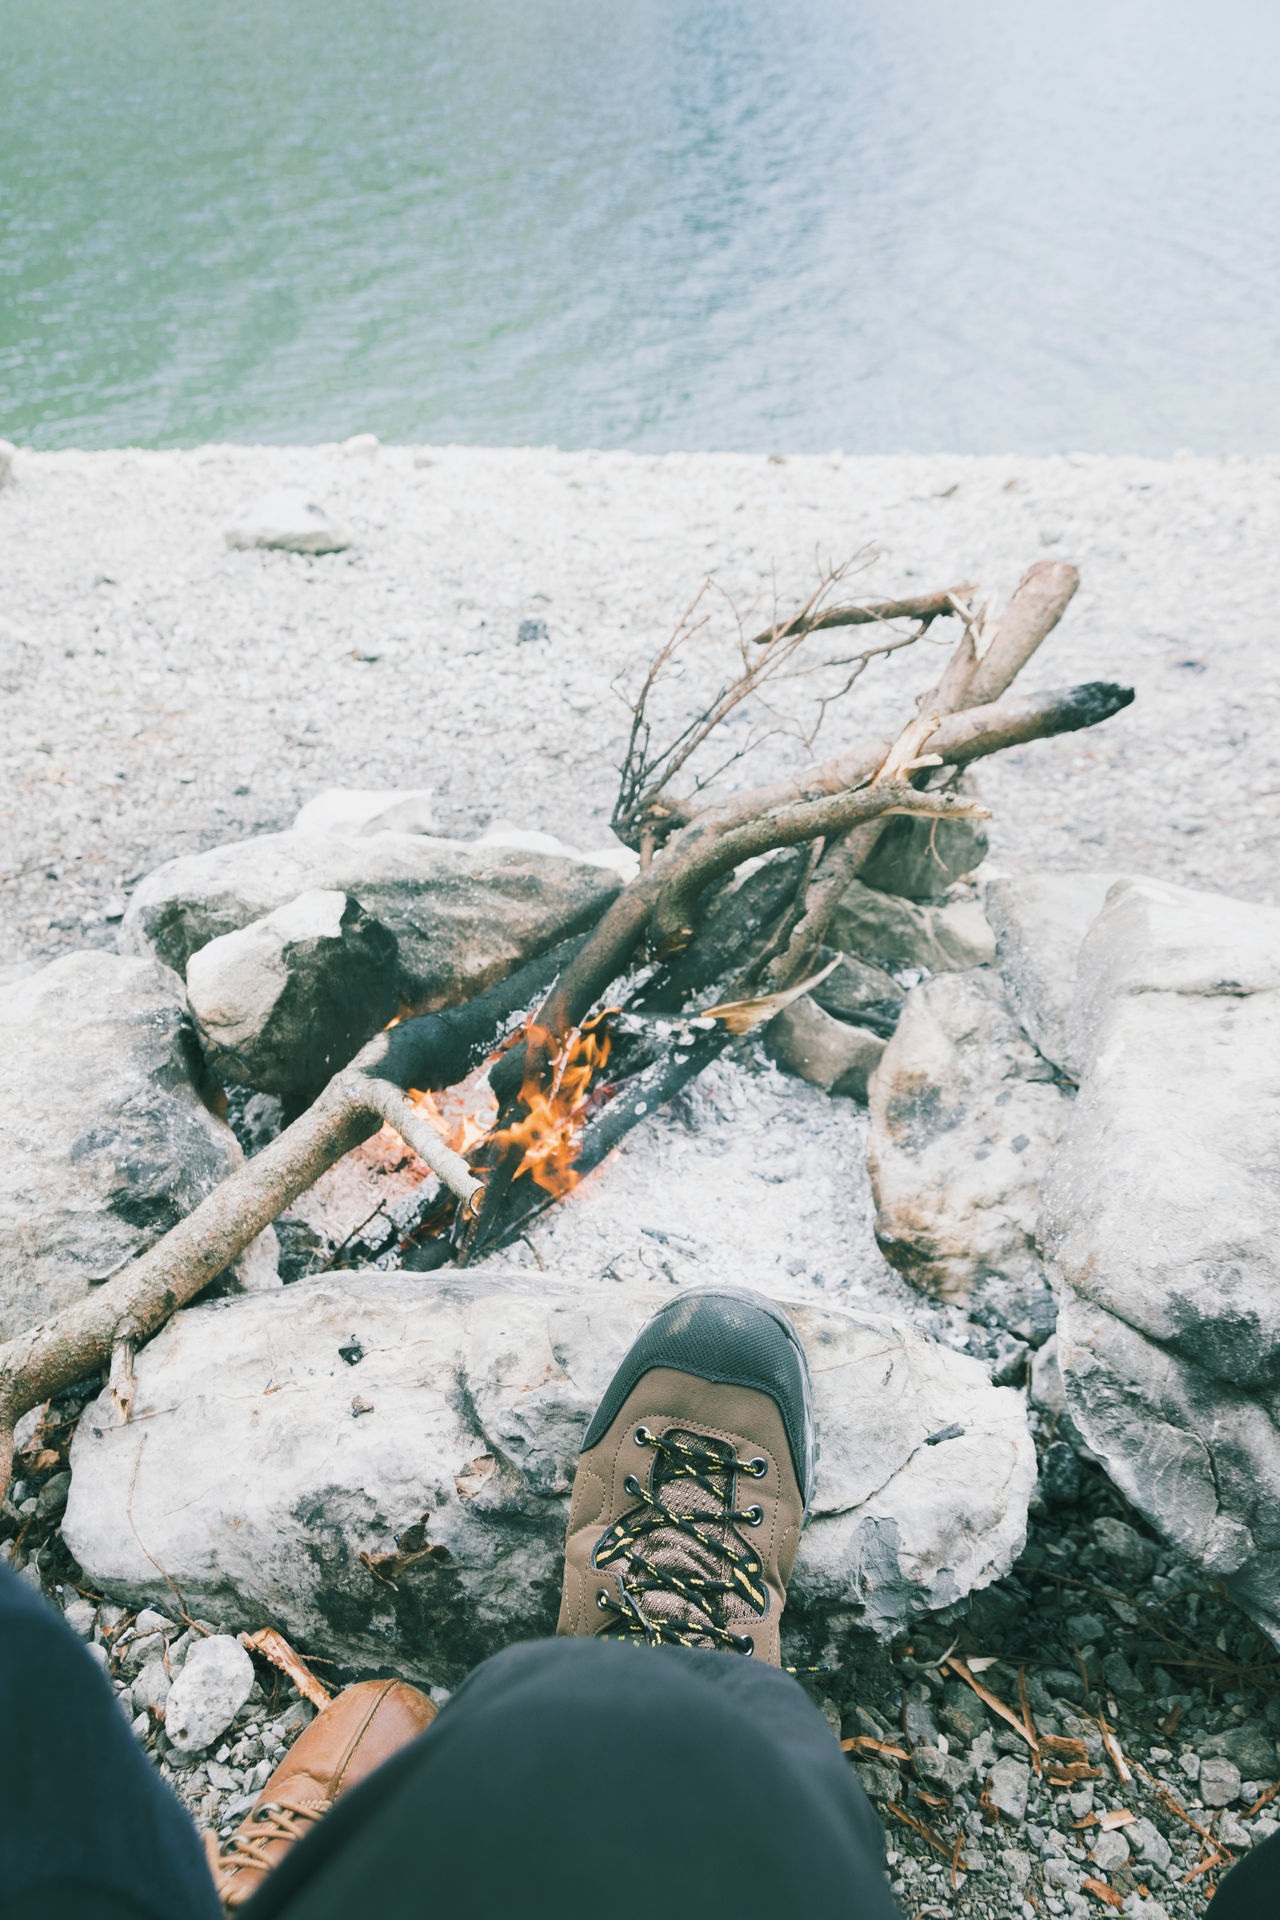 hiking shoes in front campfire Adventure Bonfire Burning Campfire Flame Hiking Hiking Shoes Lifestyles Nature Outdoor Outdoors Relaxing Shoe Water